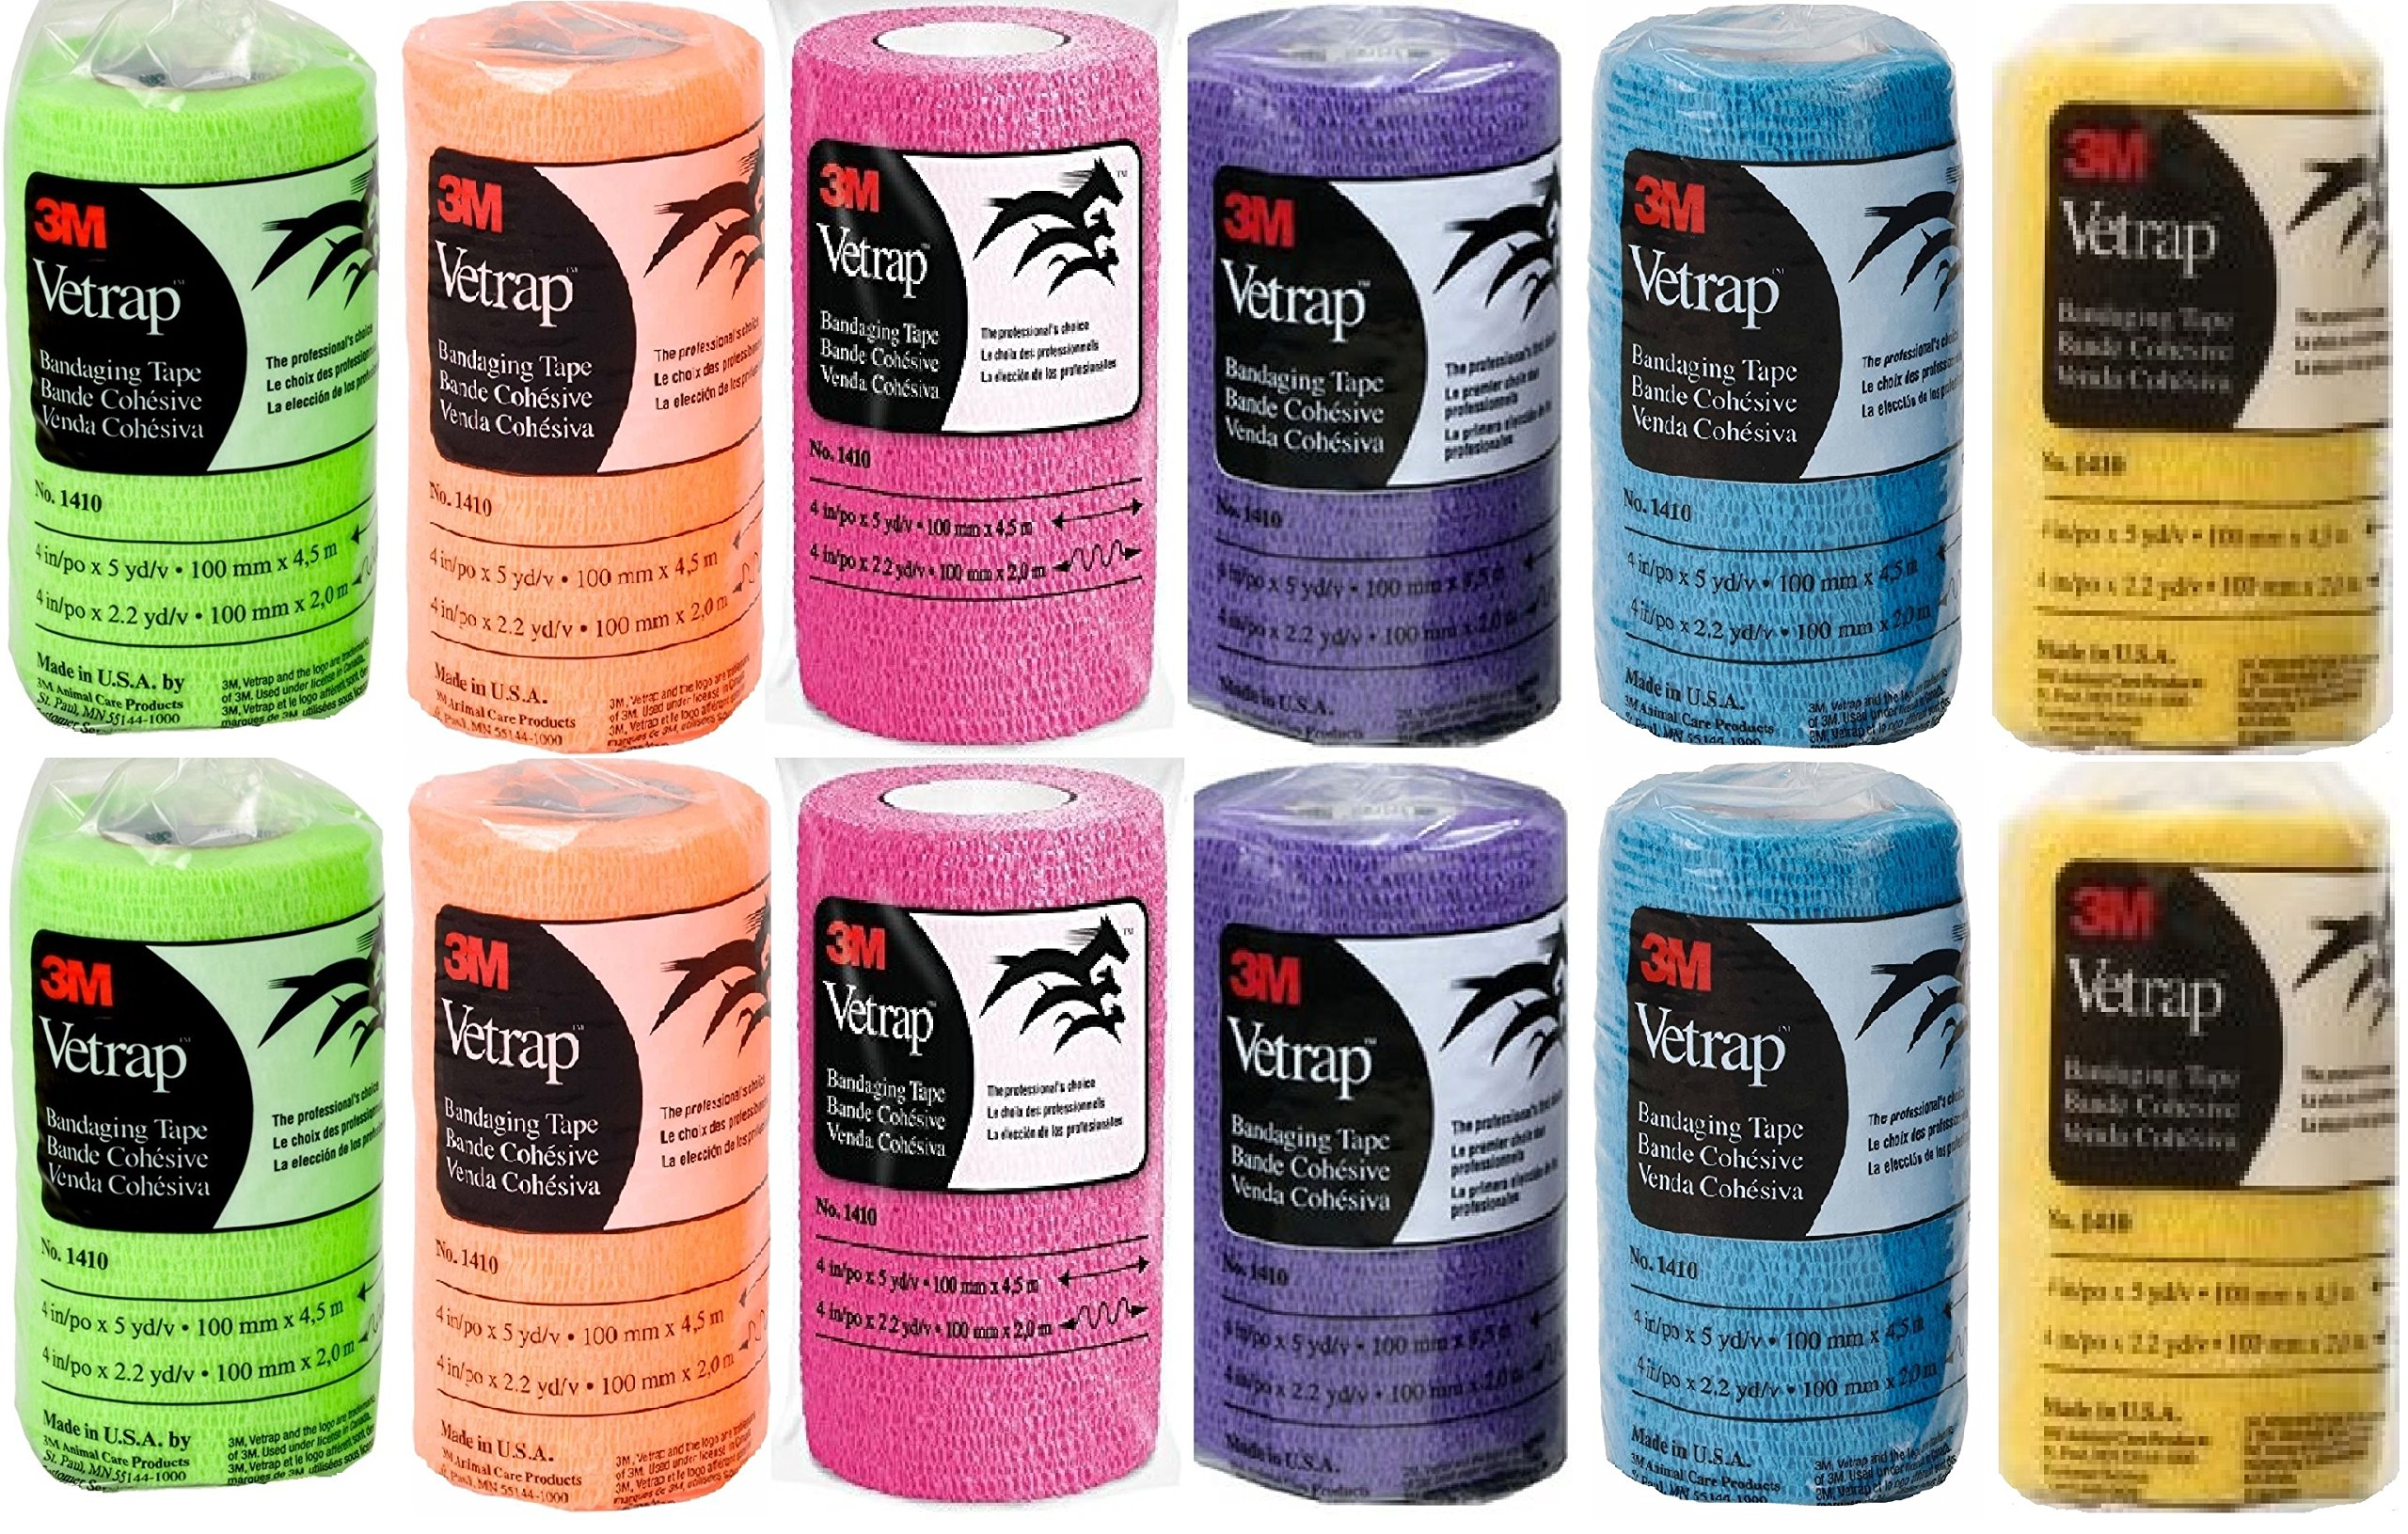 (12 Pack) 3M Company Vetrap Bandaging Tape, Assorted Colors (4'' x 5 YD)